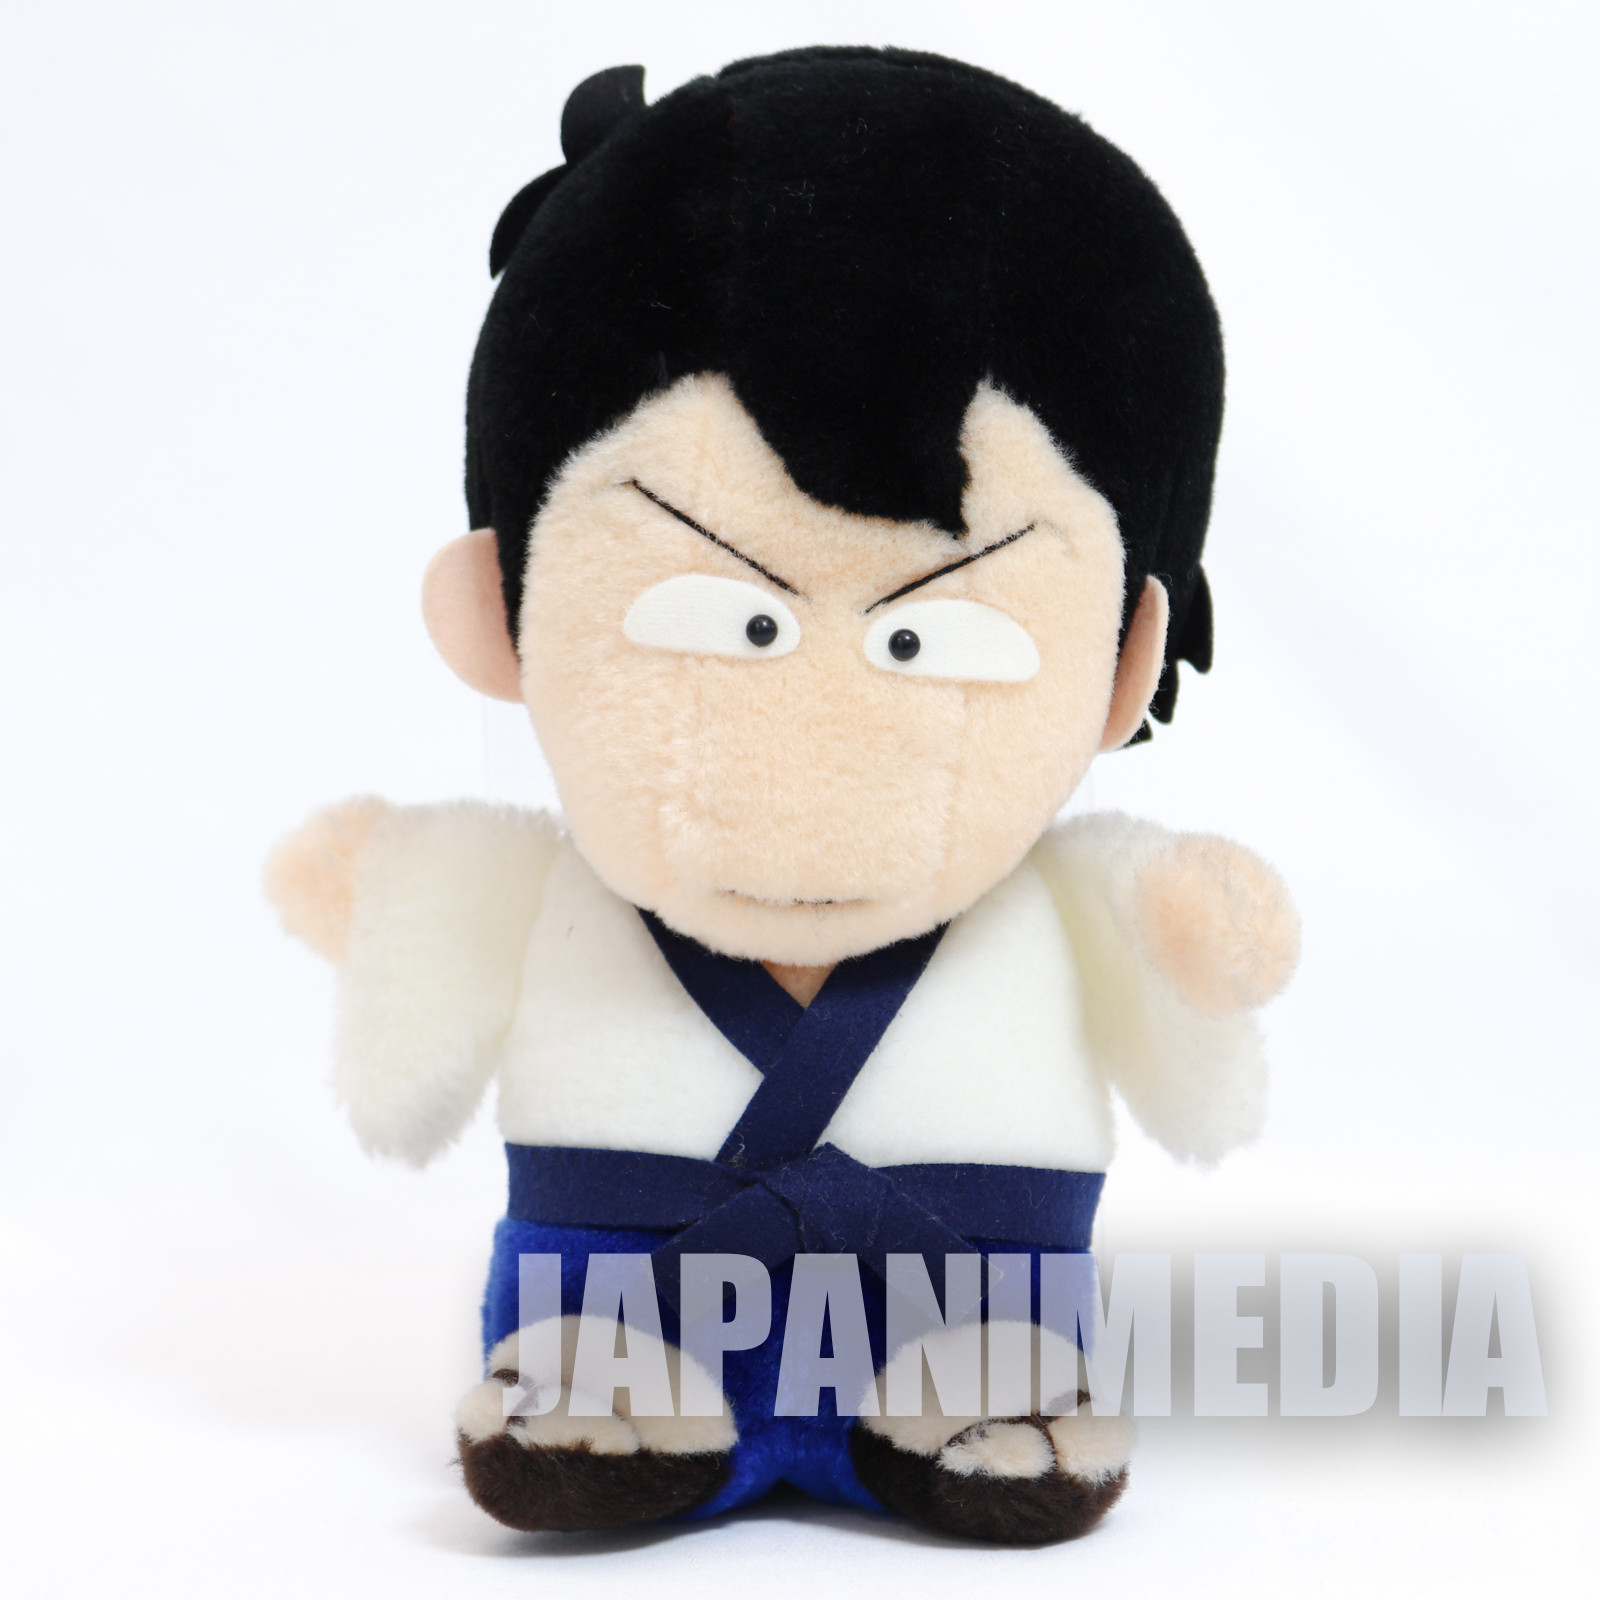 "Retro RARE! Lupin the 3rd Third Goemon Ishikawa Plush Doll 9"" JAPAN ANIME MANGA"